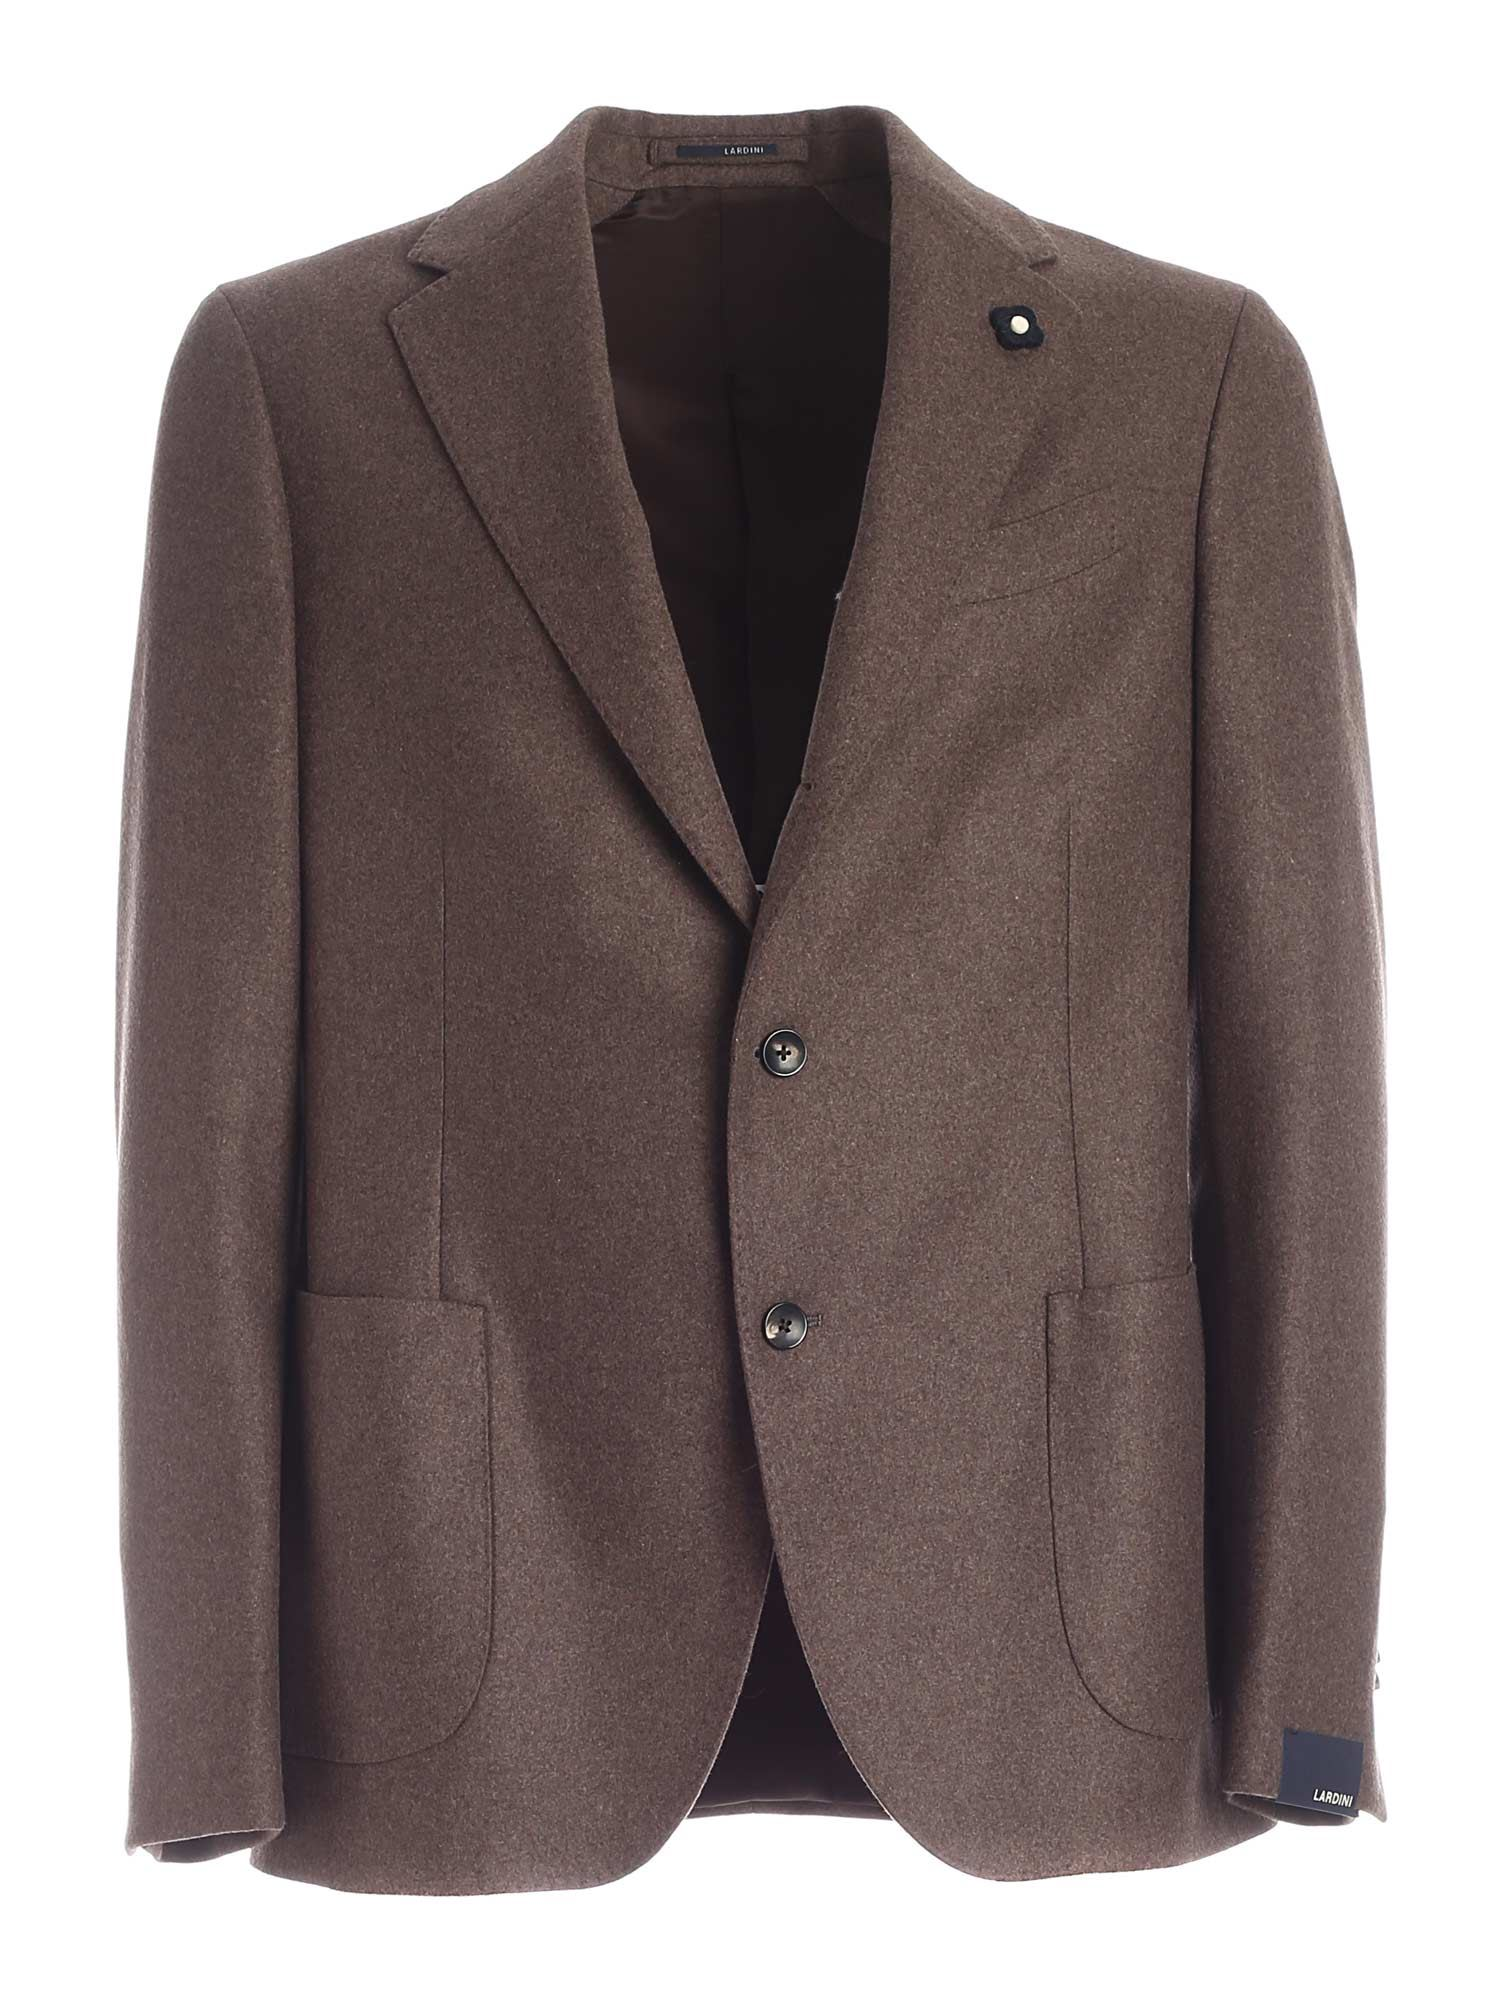 Lardini 3 - ROLL JACKET IN BROWN